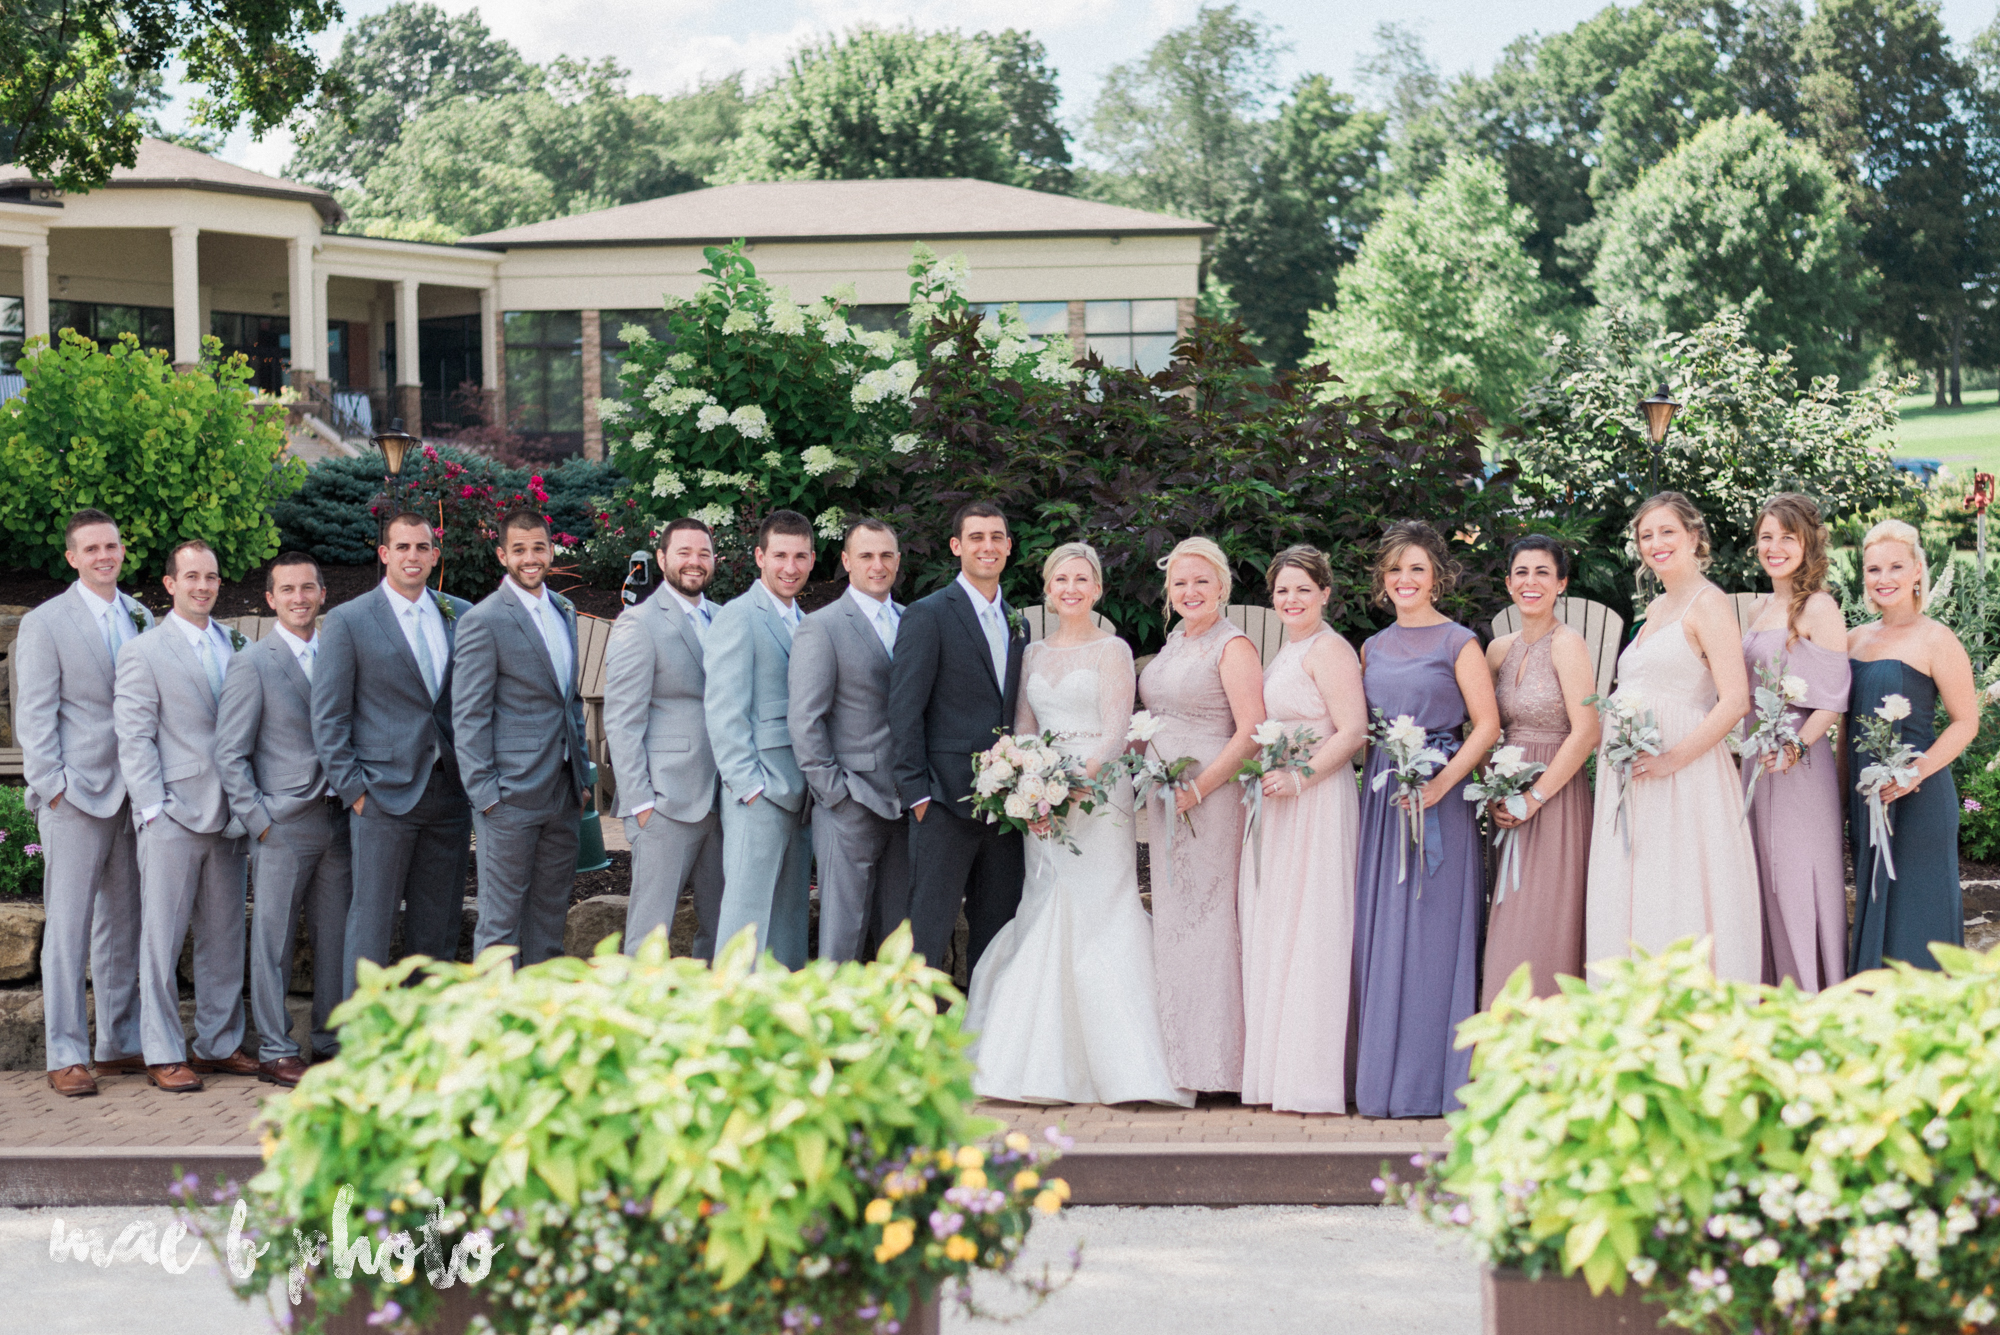 emily and michael's industrial chic summer country club wedding at the lake club in poland ohio photographed by cleveland wedding photographer mae b photo-71.jpg